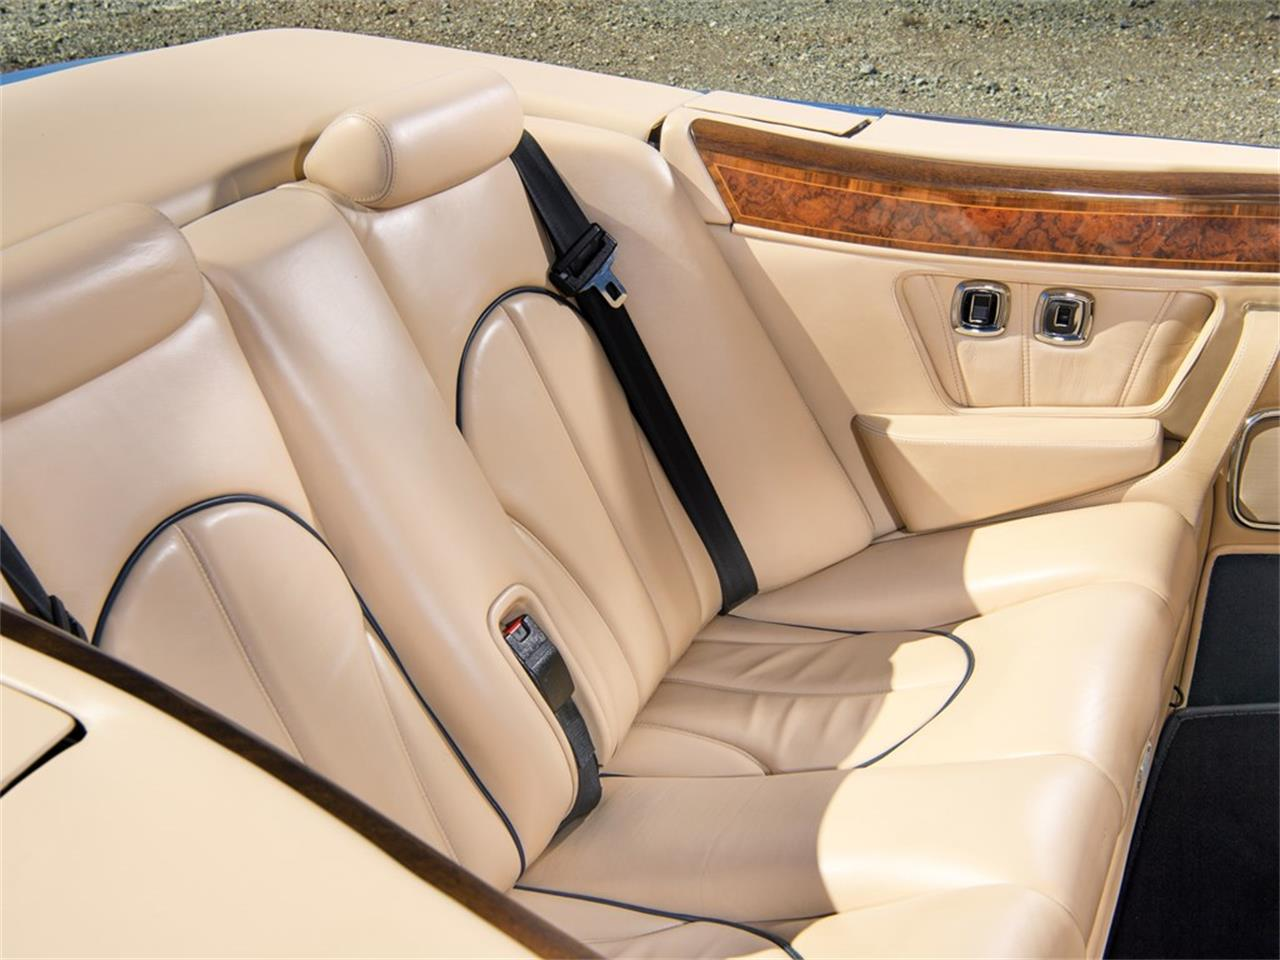 2000 Rolls-Royce Corniche for sale in Essen, Other – photo 12